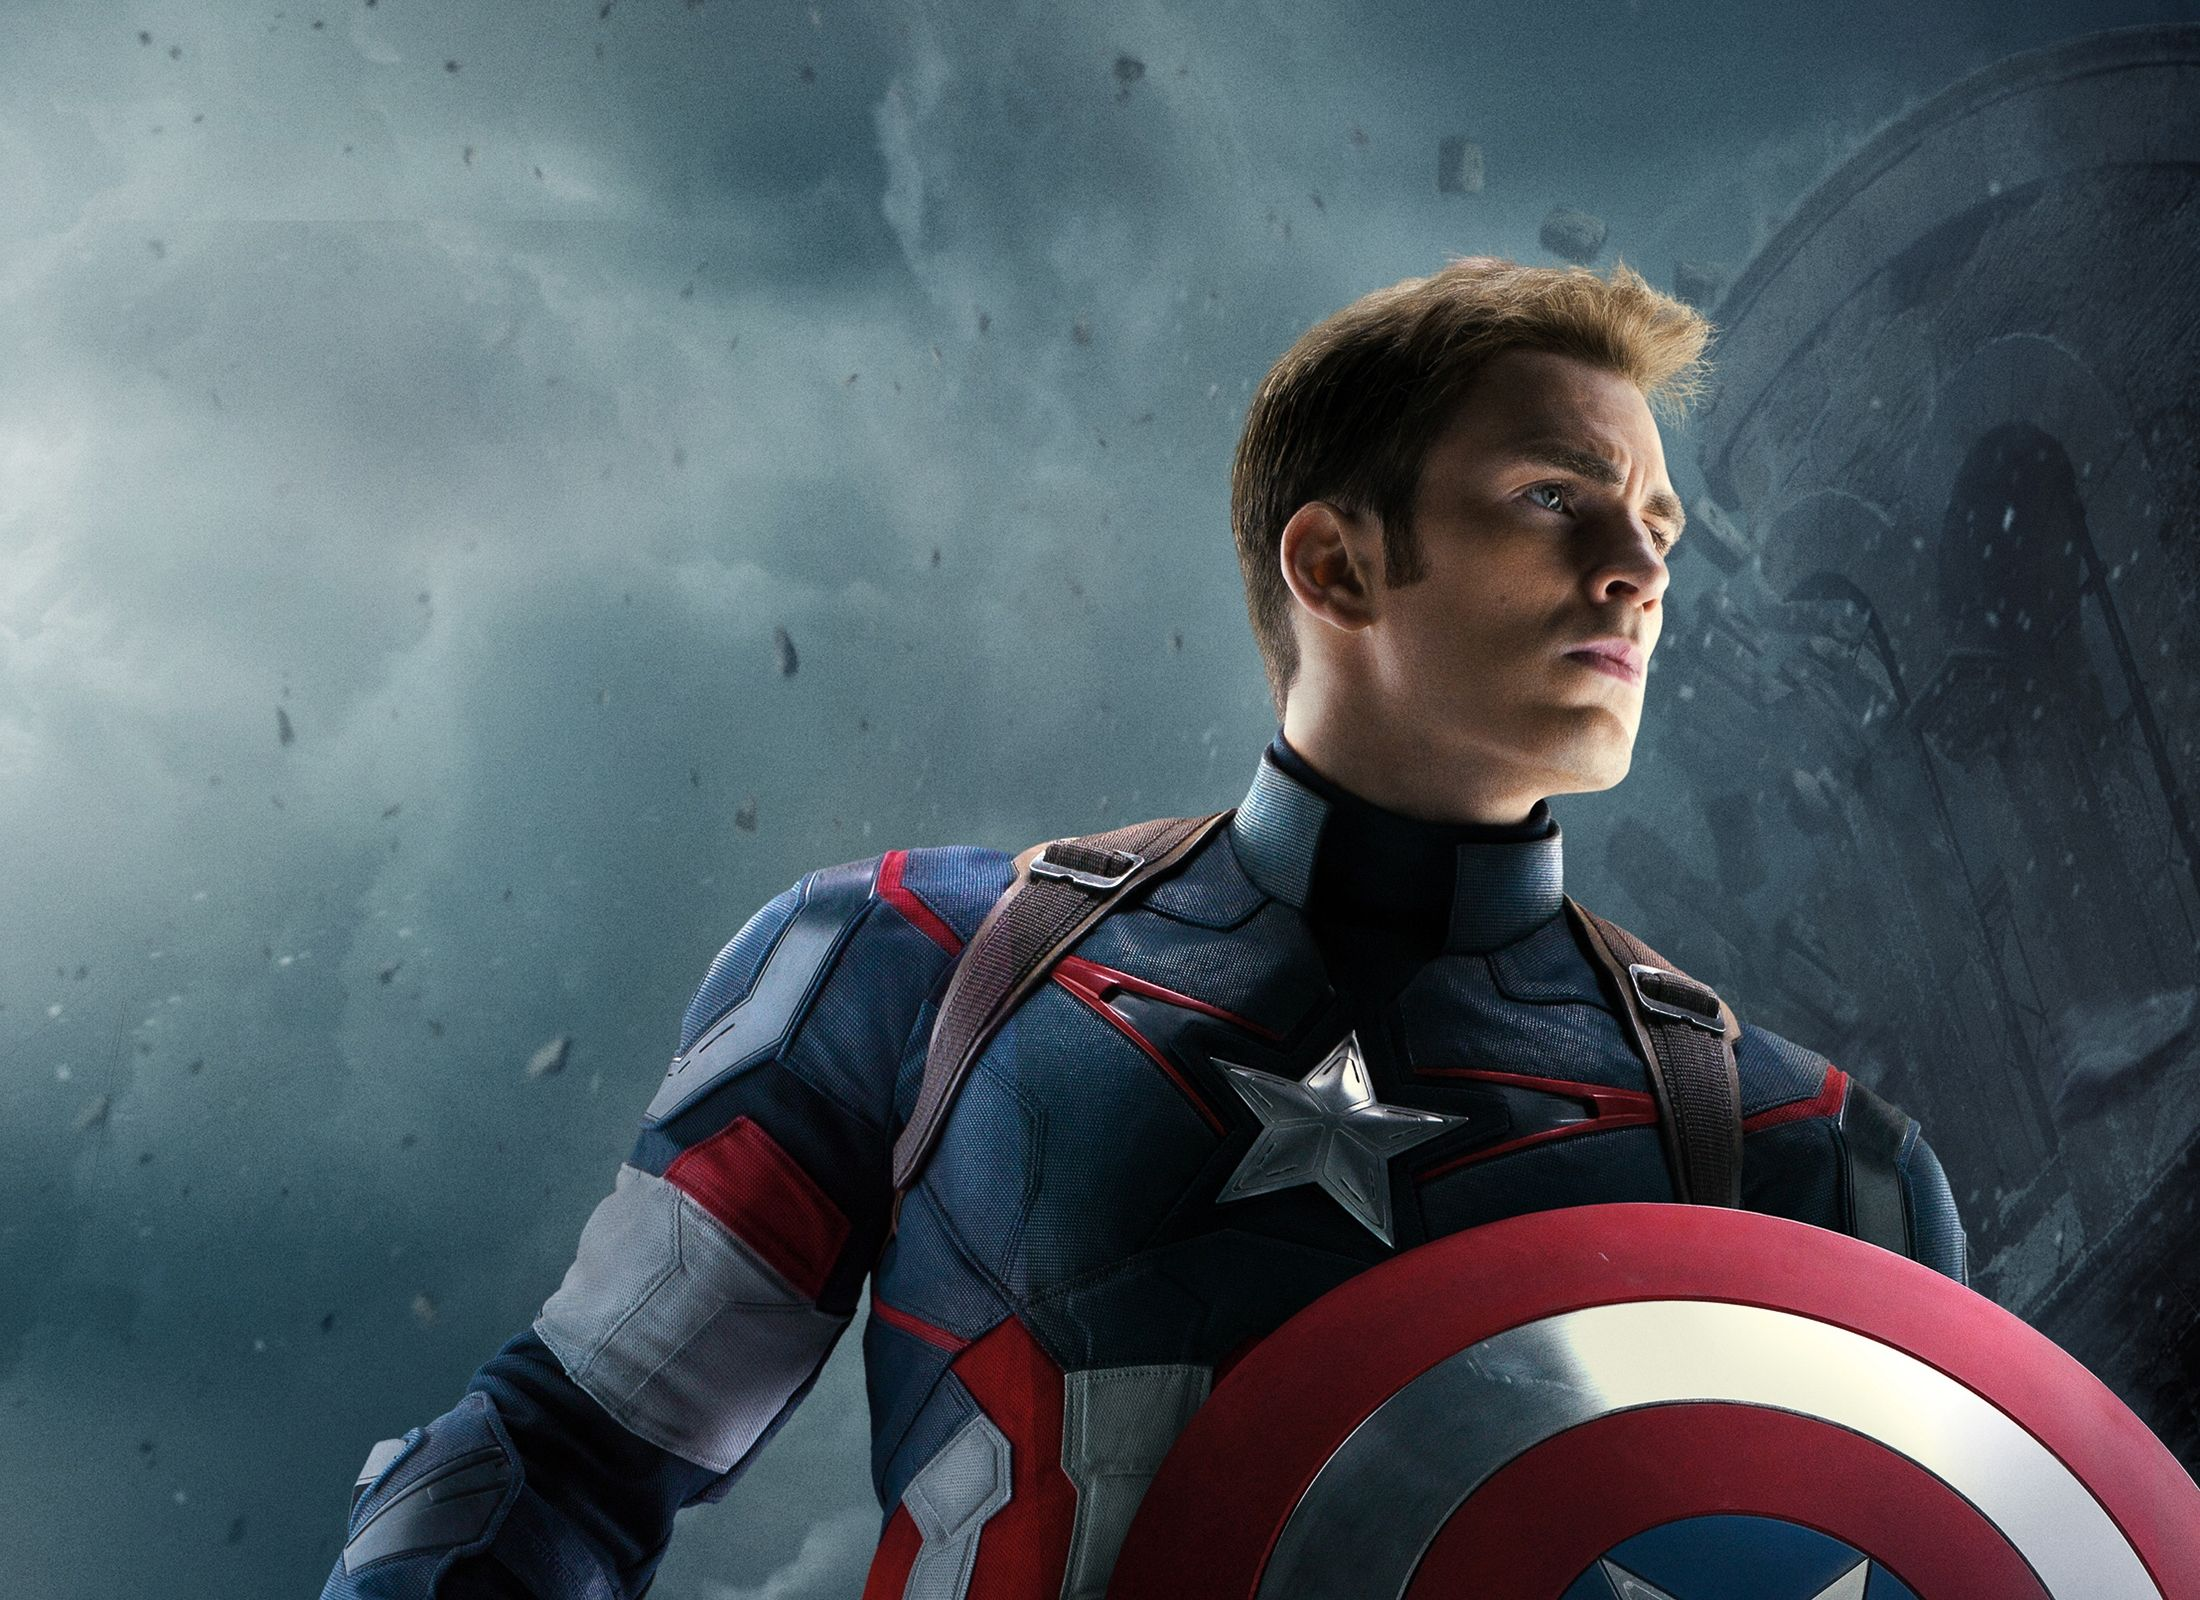 Captain america wallpapers free download hd wallpapers - Captain america hd images download ...